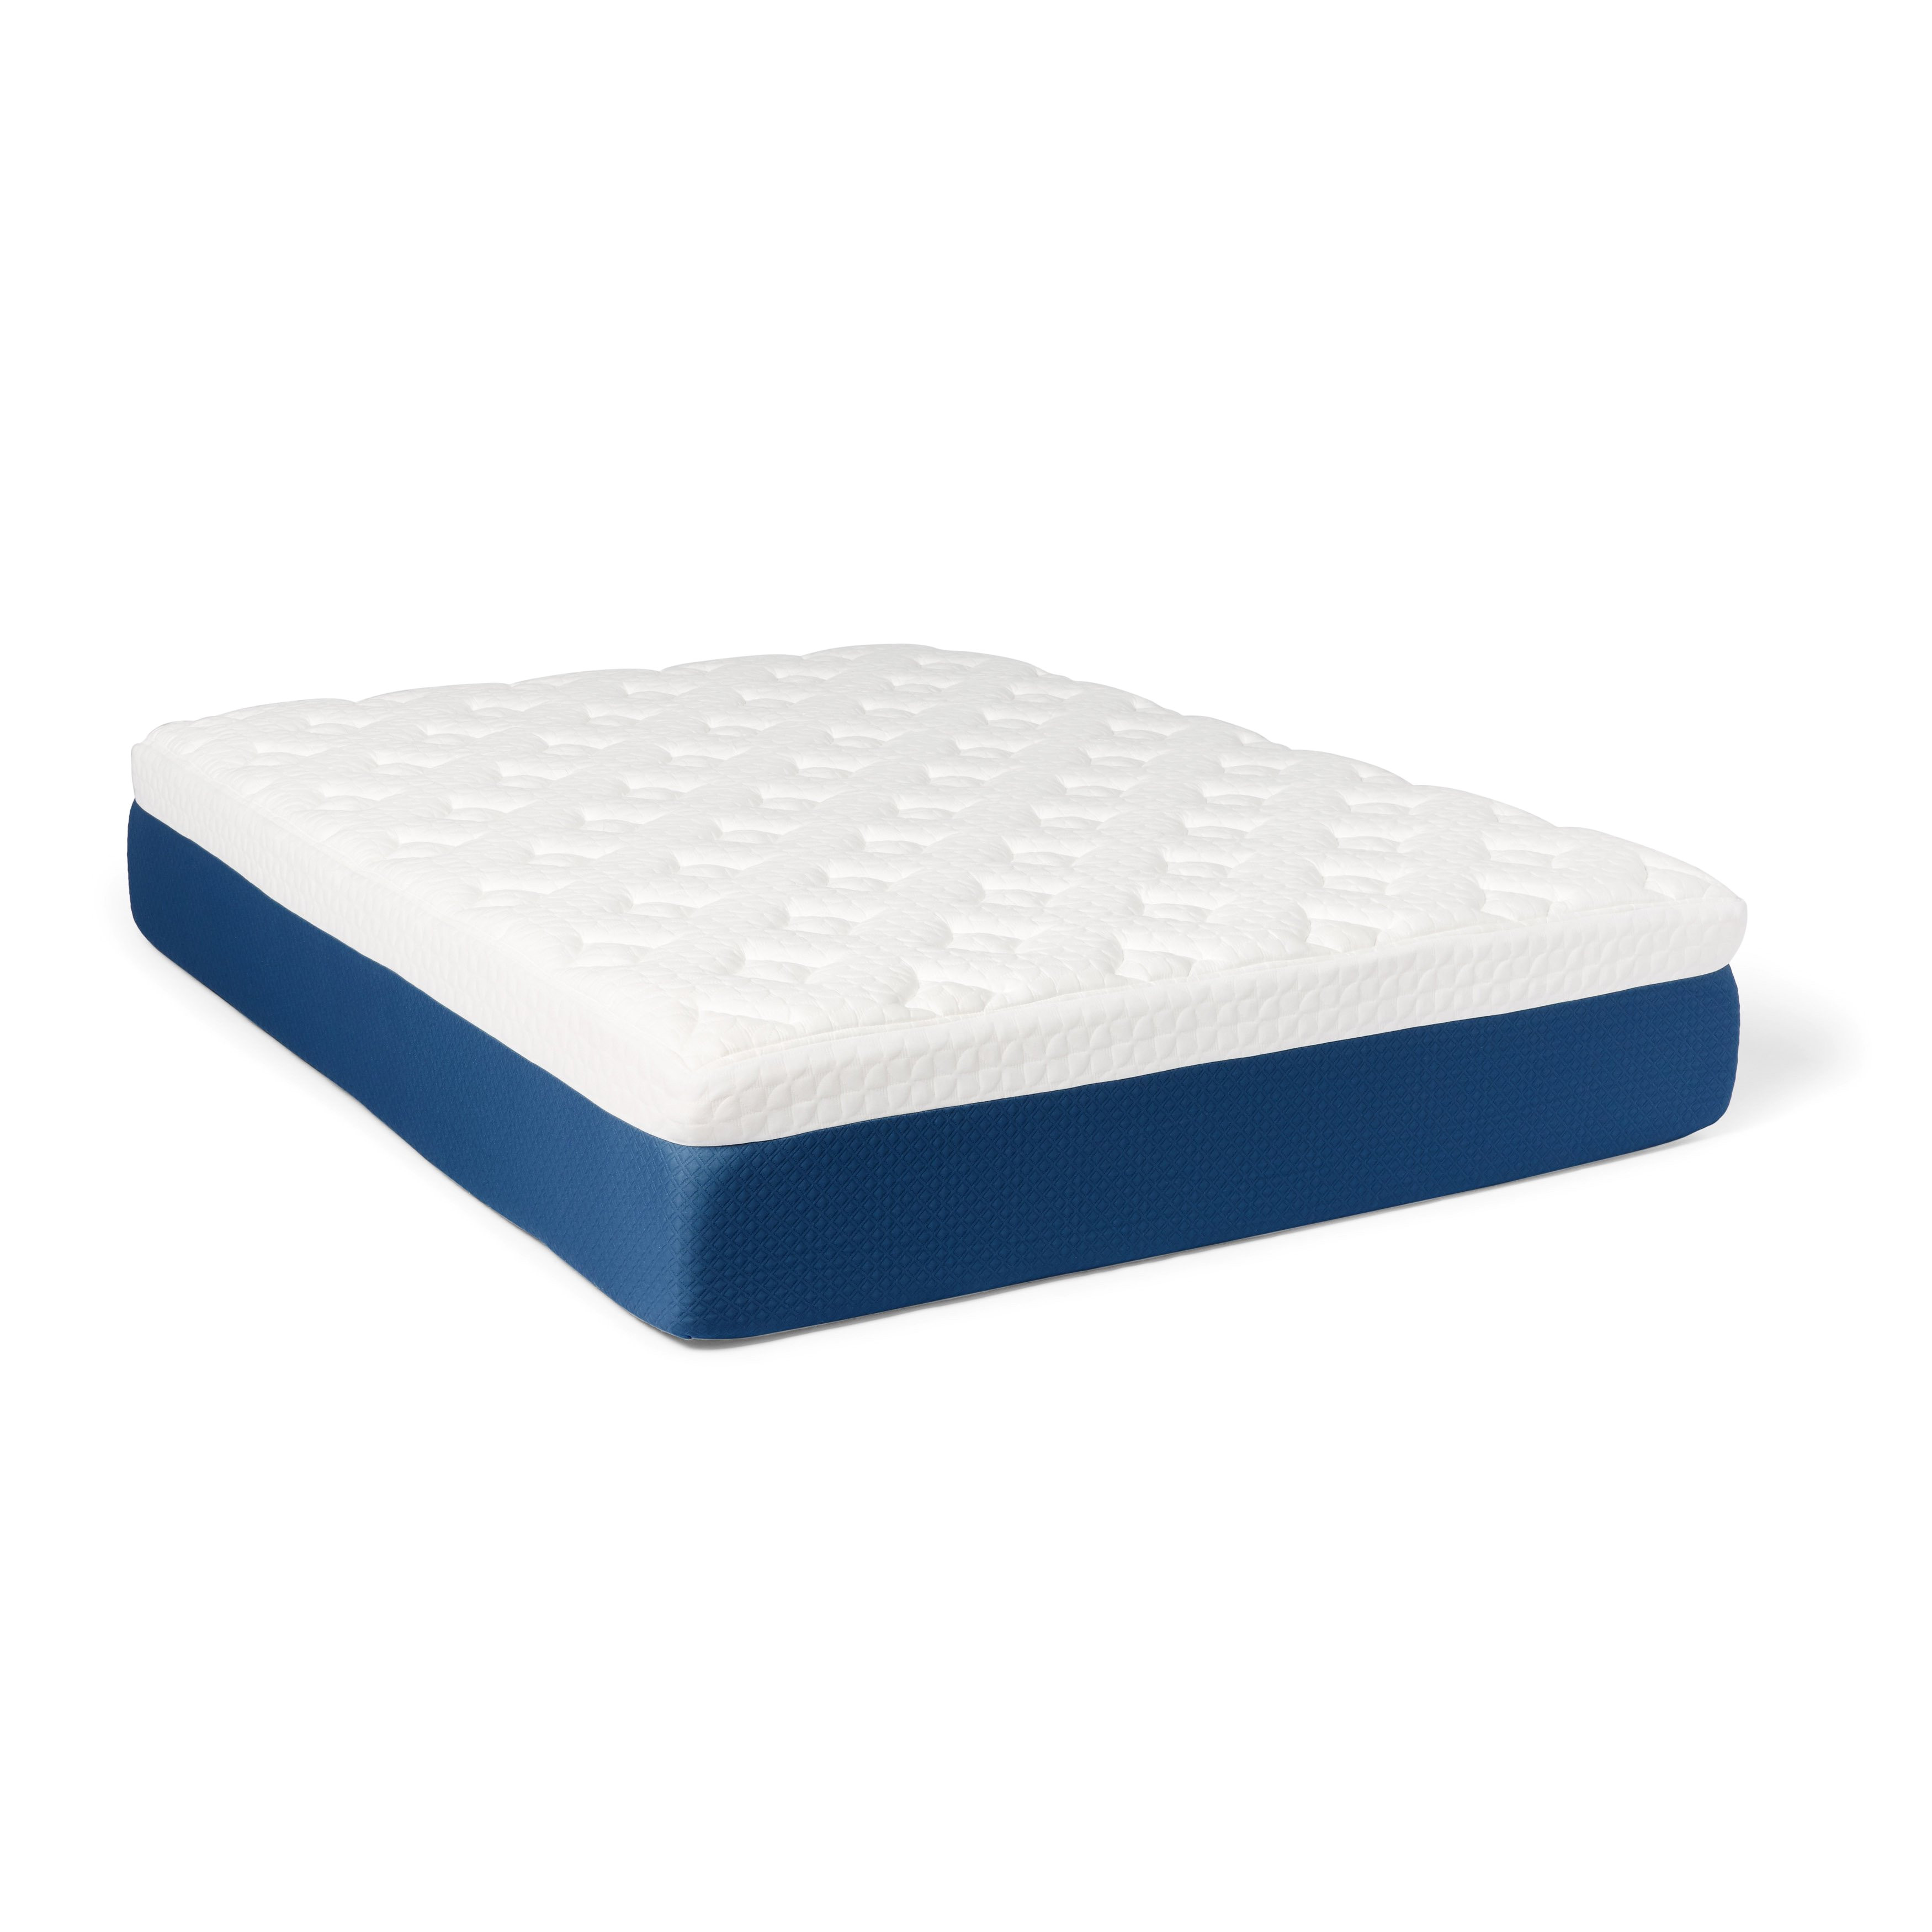 shop select luxury 14 inch queen size quilted airflow gel memory foam mattress on sale free shipping today overstock com 14404461